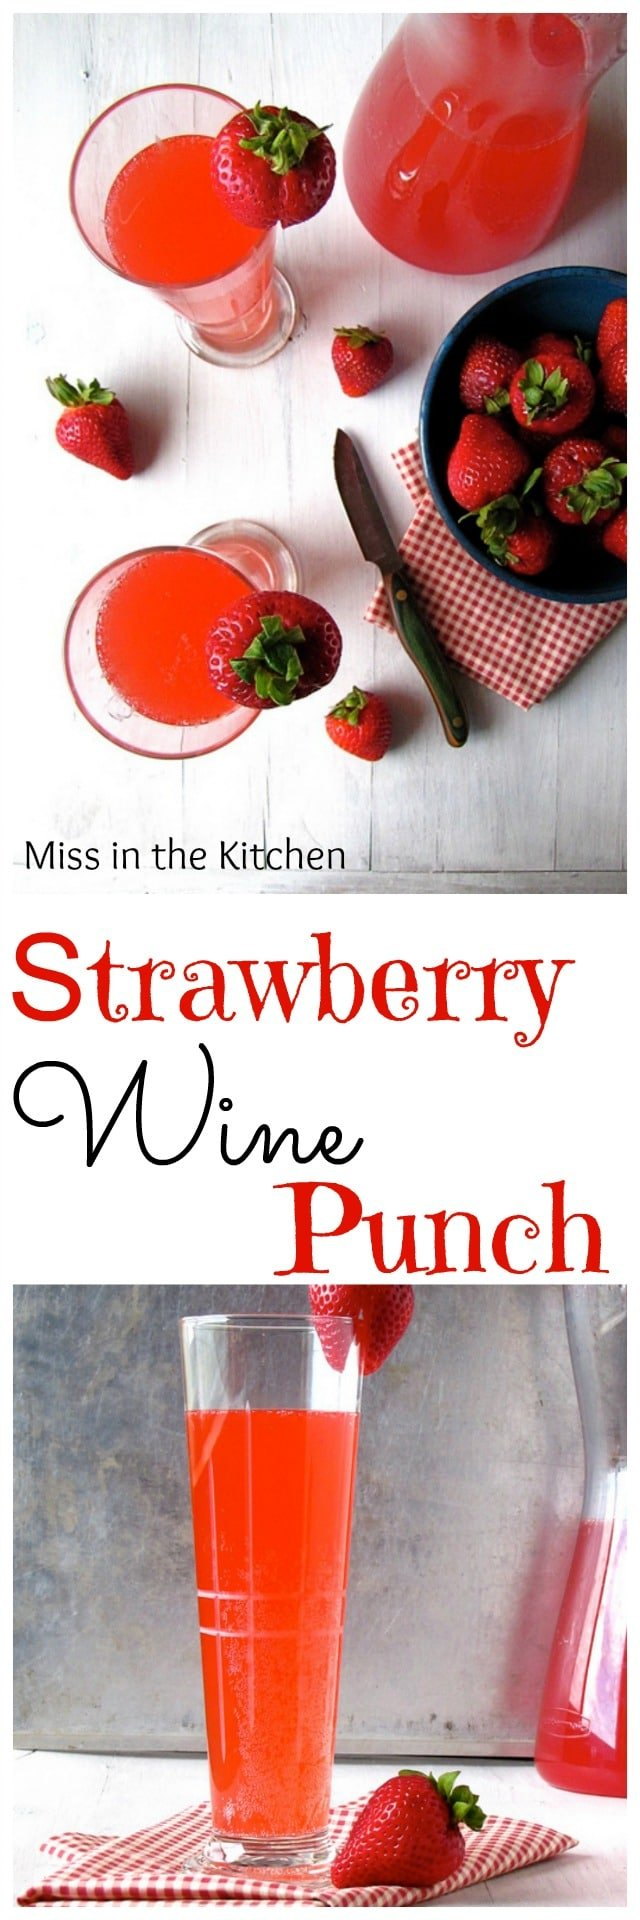 Strawberry Wine Punch Cocktail Recipe from MissintheKitchen.com